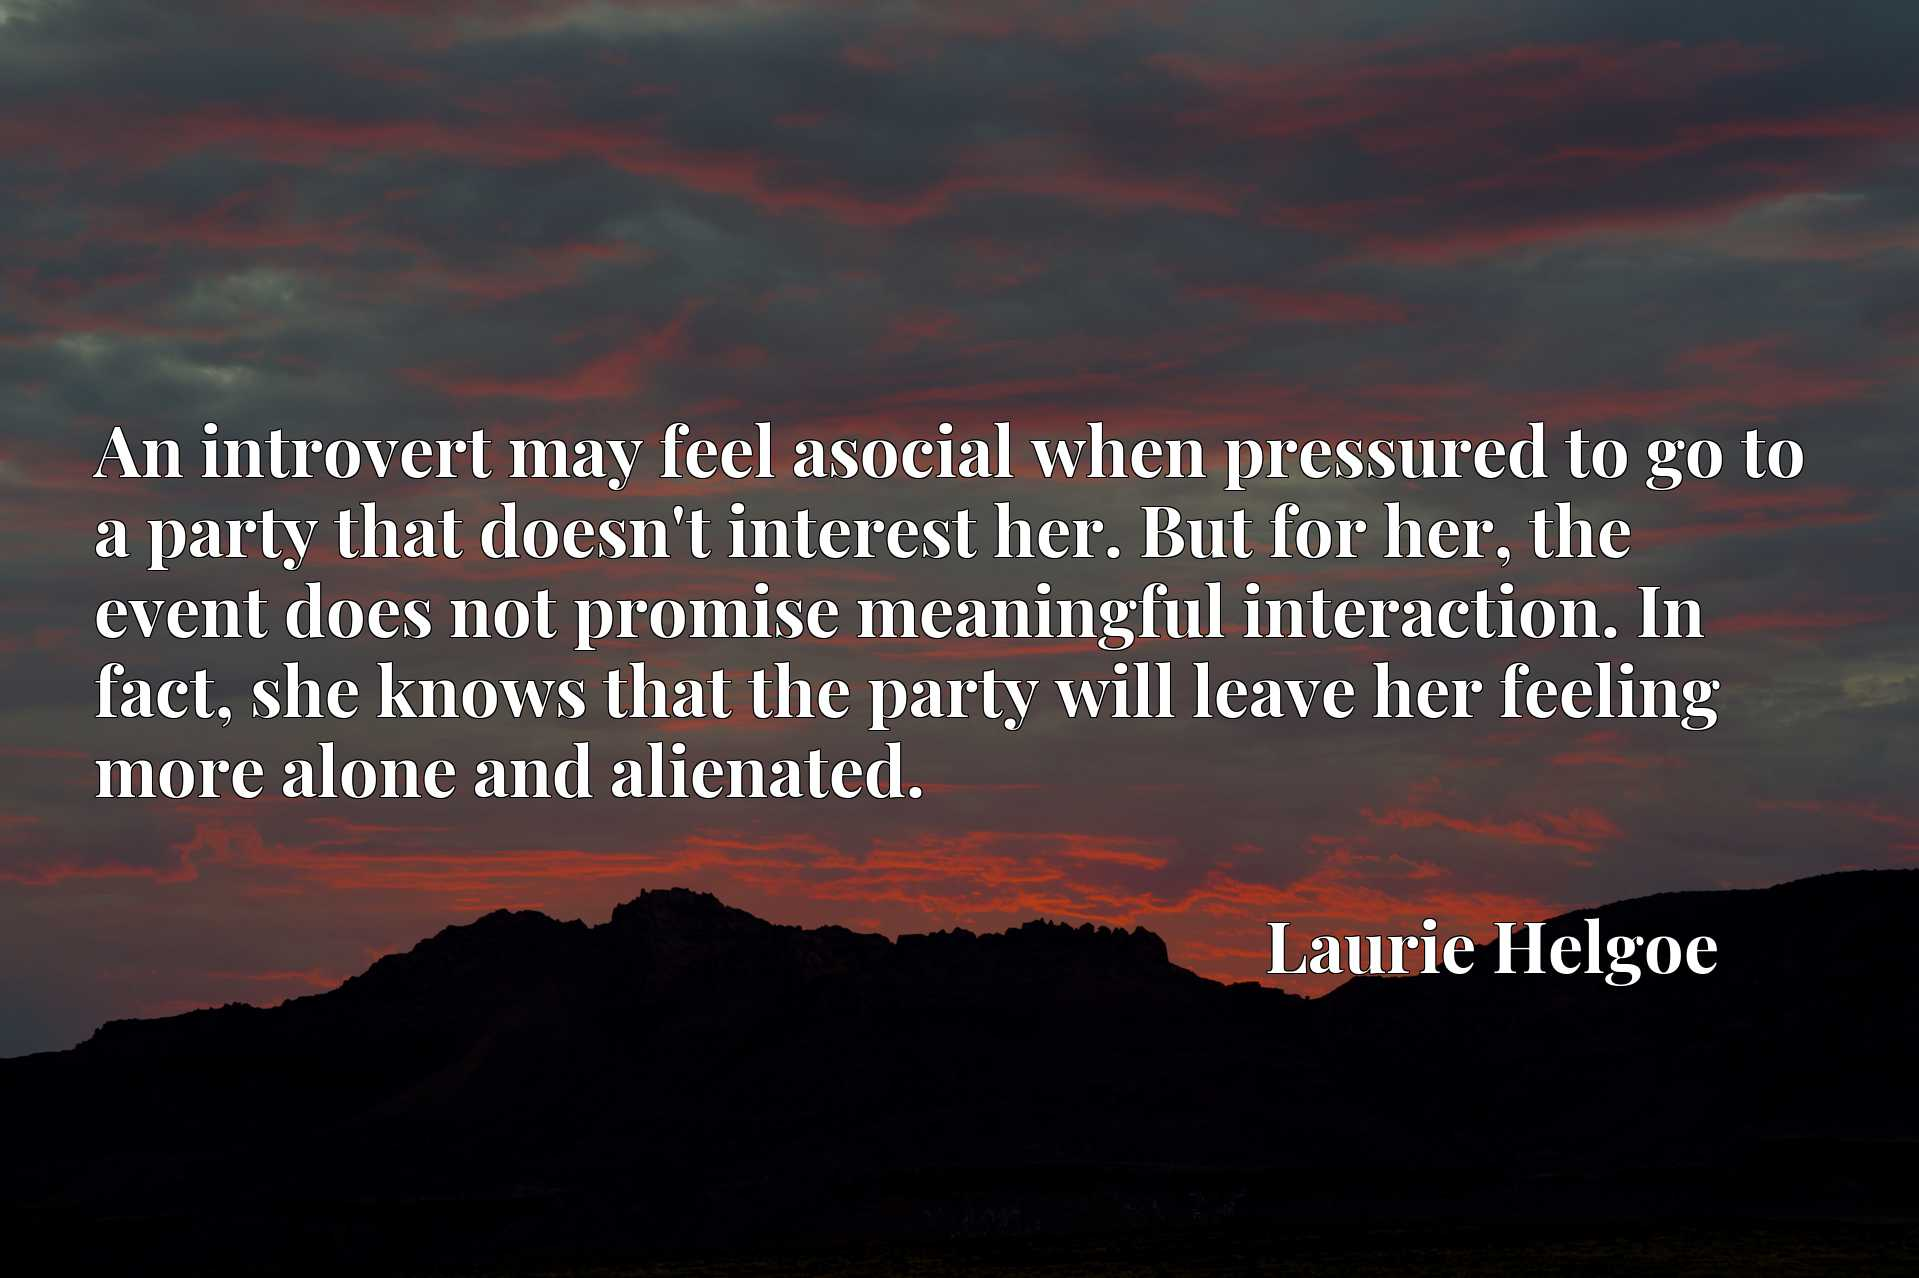 An introvert may feel asocial when pressured to go to a party that doesn't interest her. But for her, the event does not promise meaningful interaction. In fact, she knows that the party will leave her feeling more alone and alienated.